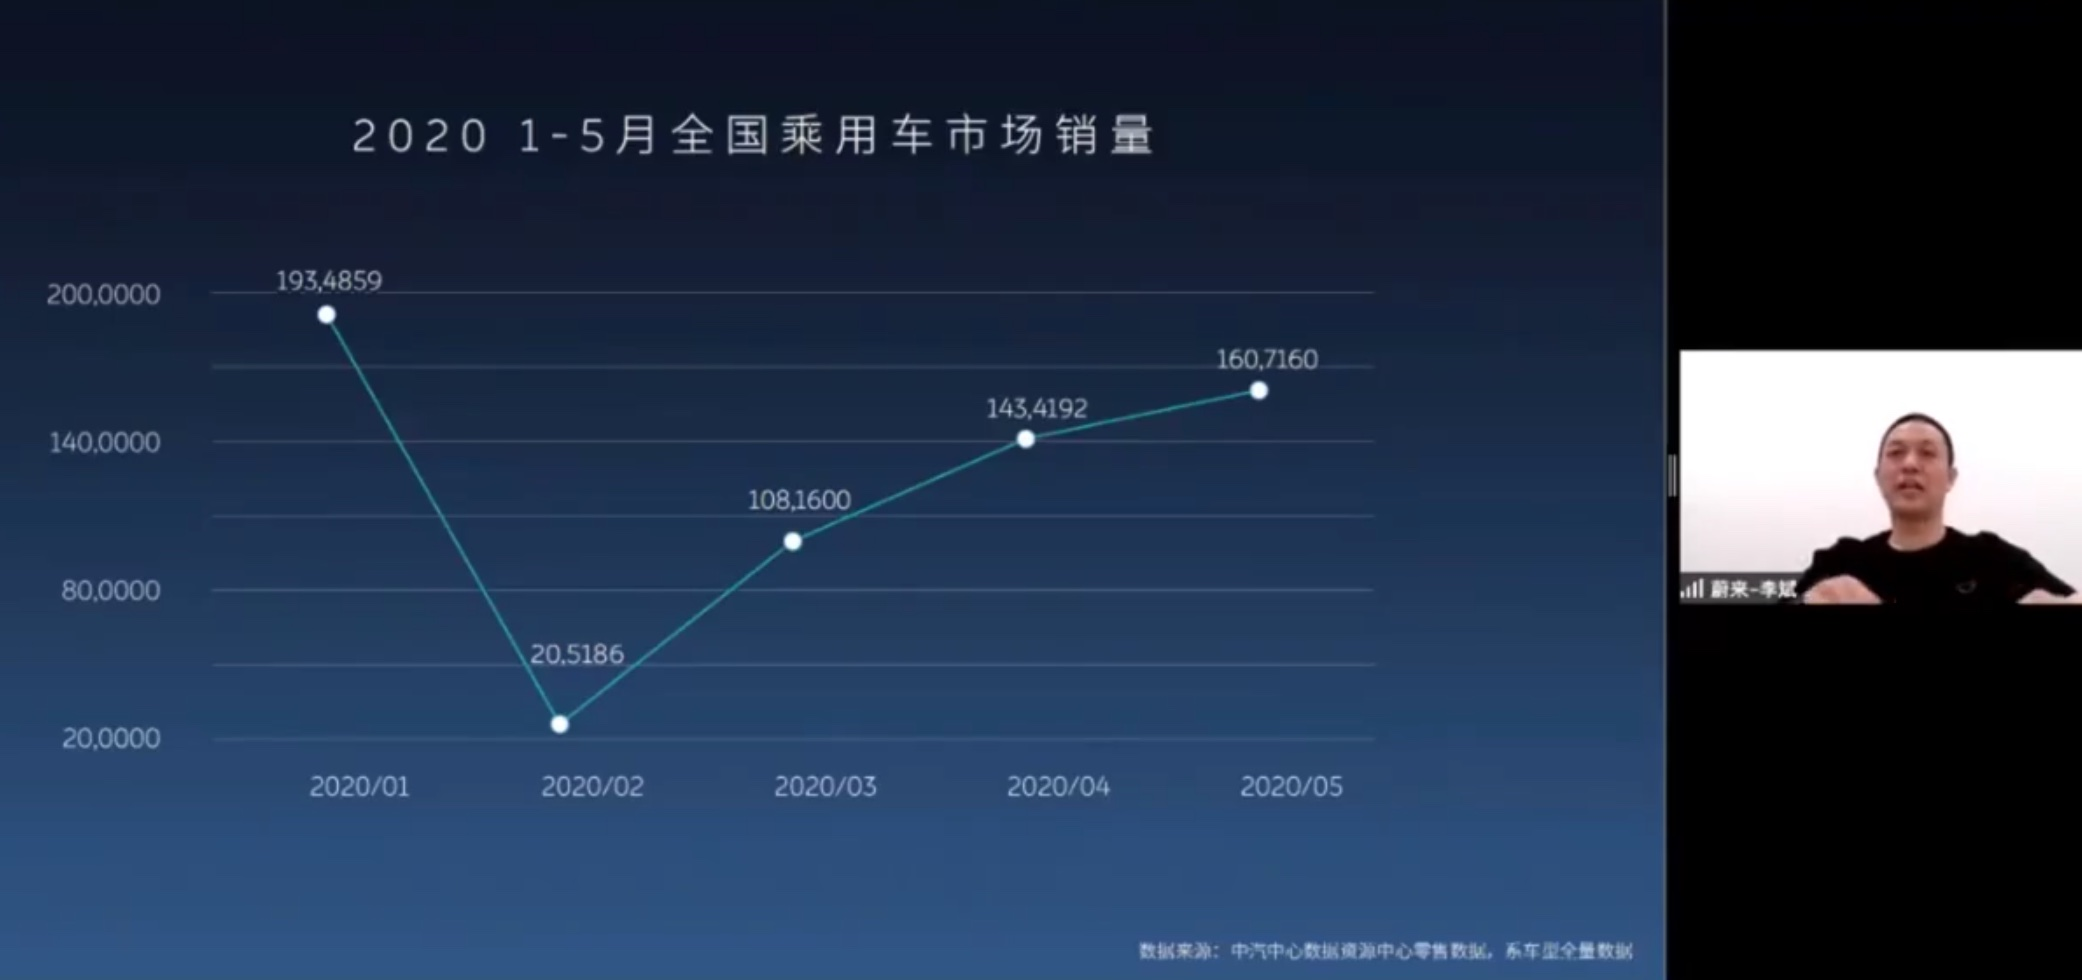 China's car sales expected to drop 10% in 2020, Nio founder says-cnTechPost